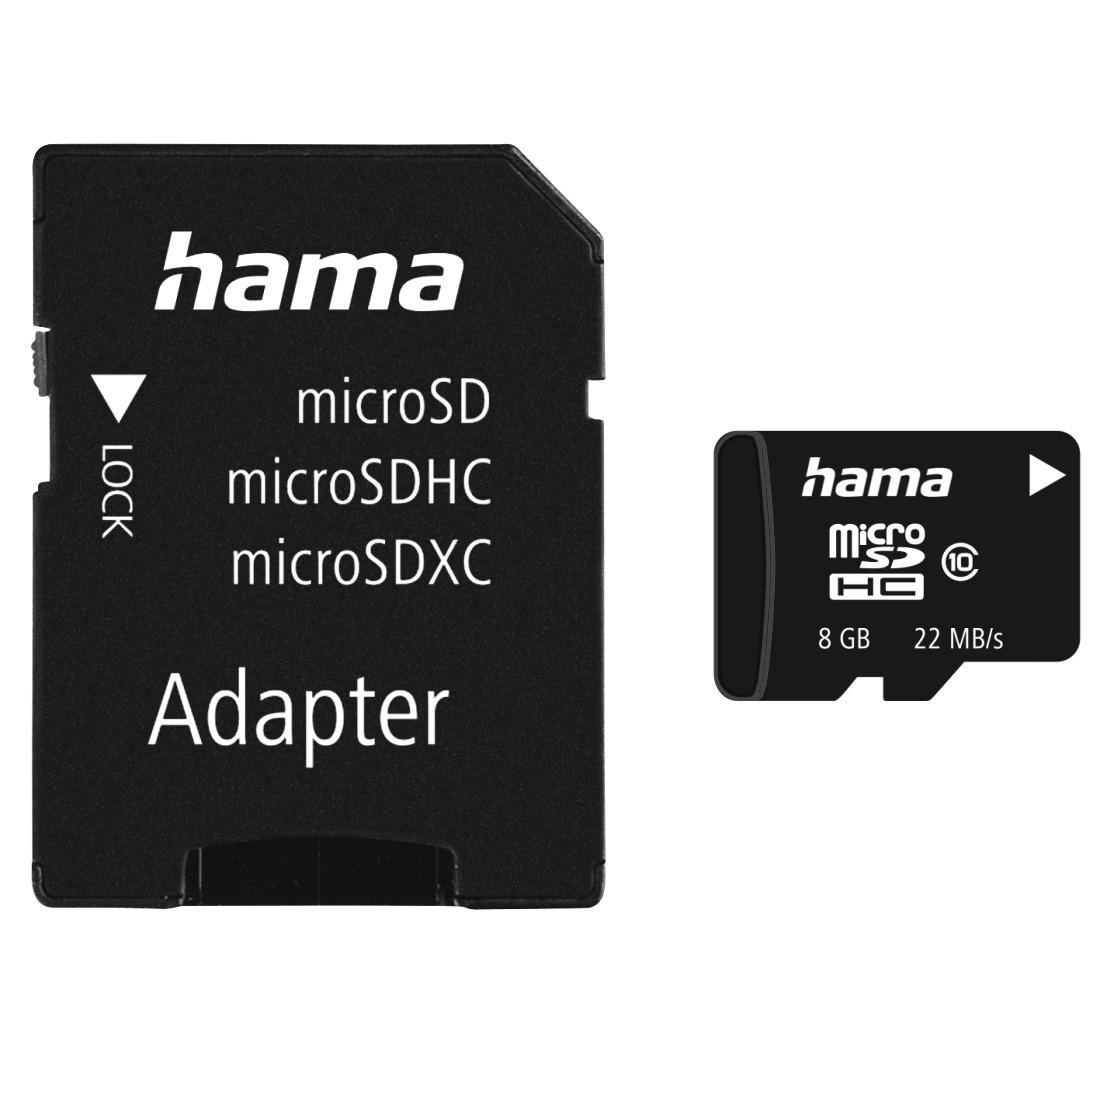 abx High-Res Image - Hama, microSDHC 8GB Class 10 22mB/s + Adapter/Photo